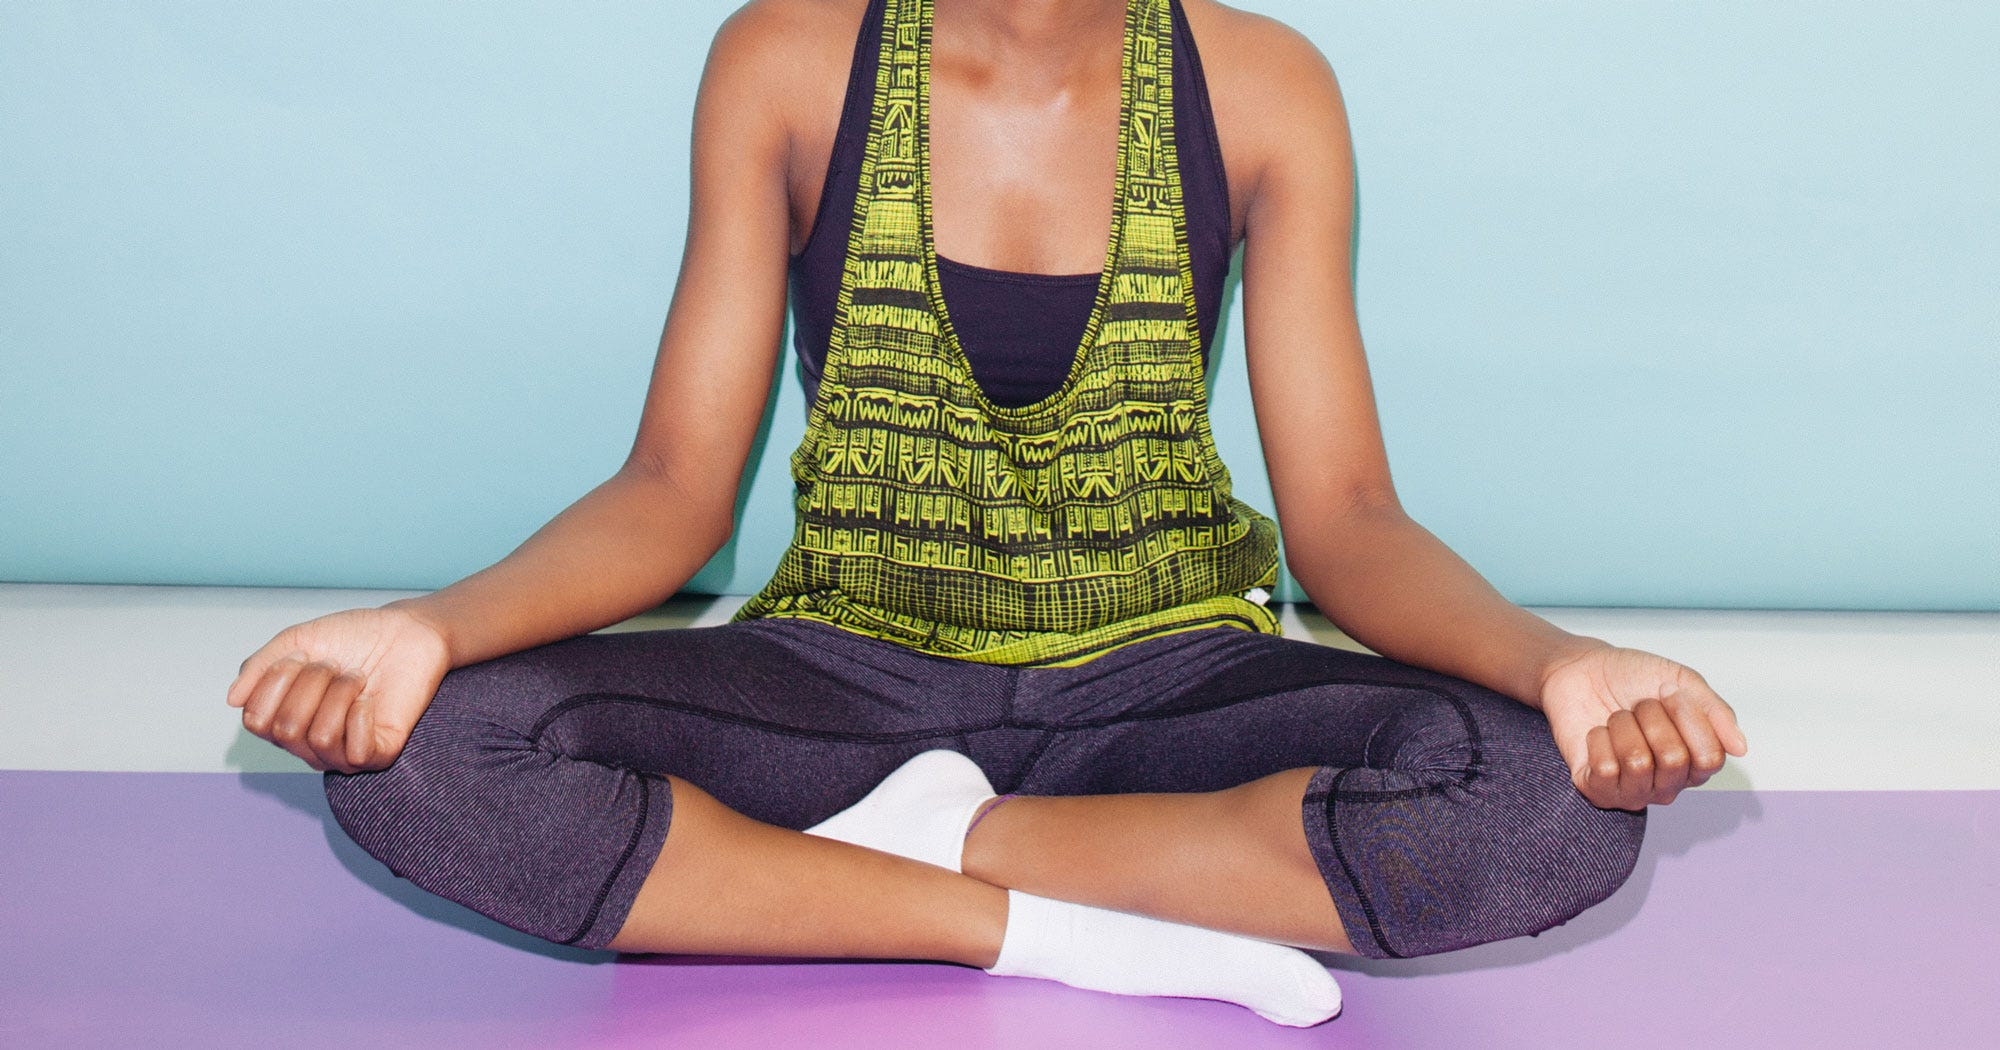 8 Hacks That Make Meditation Actually Doable